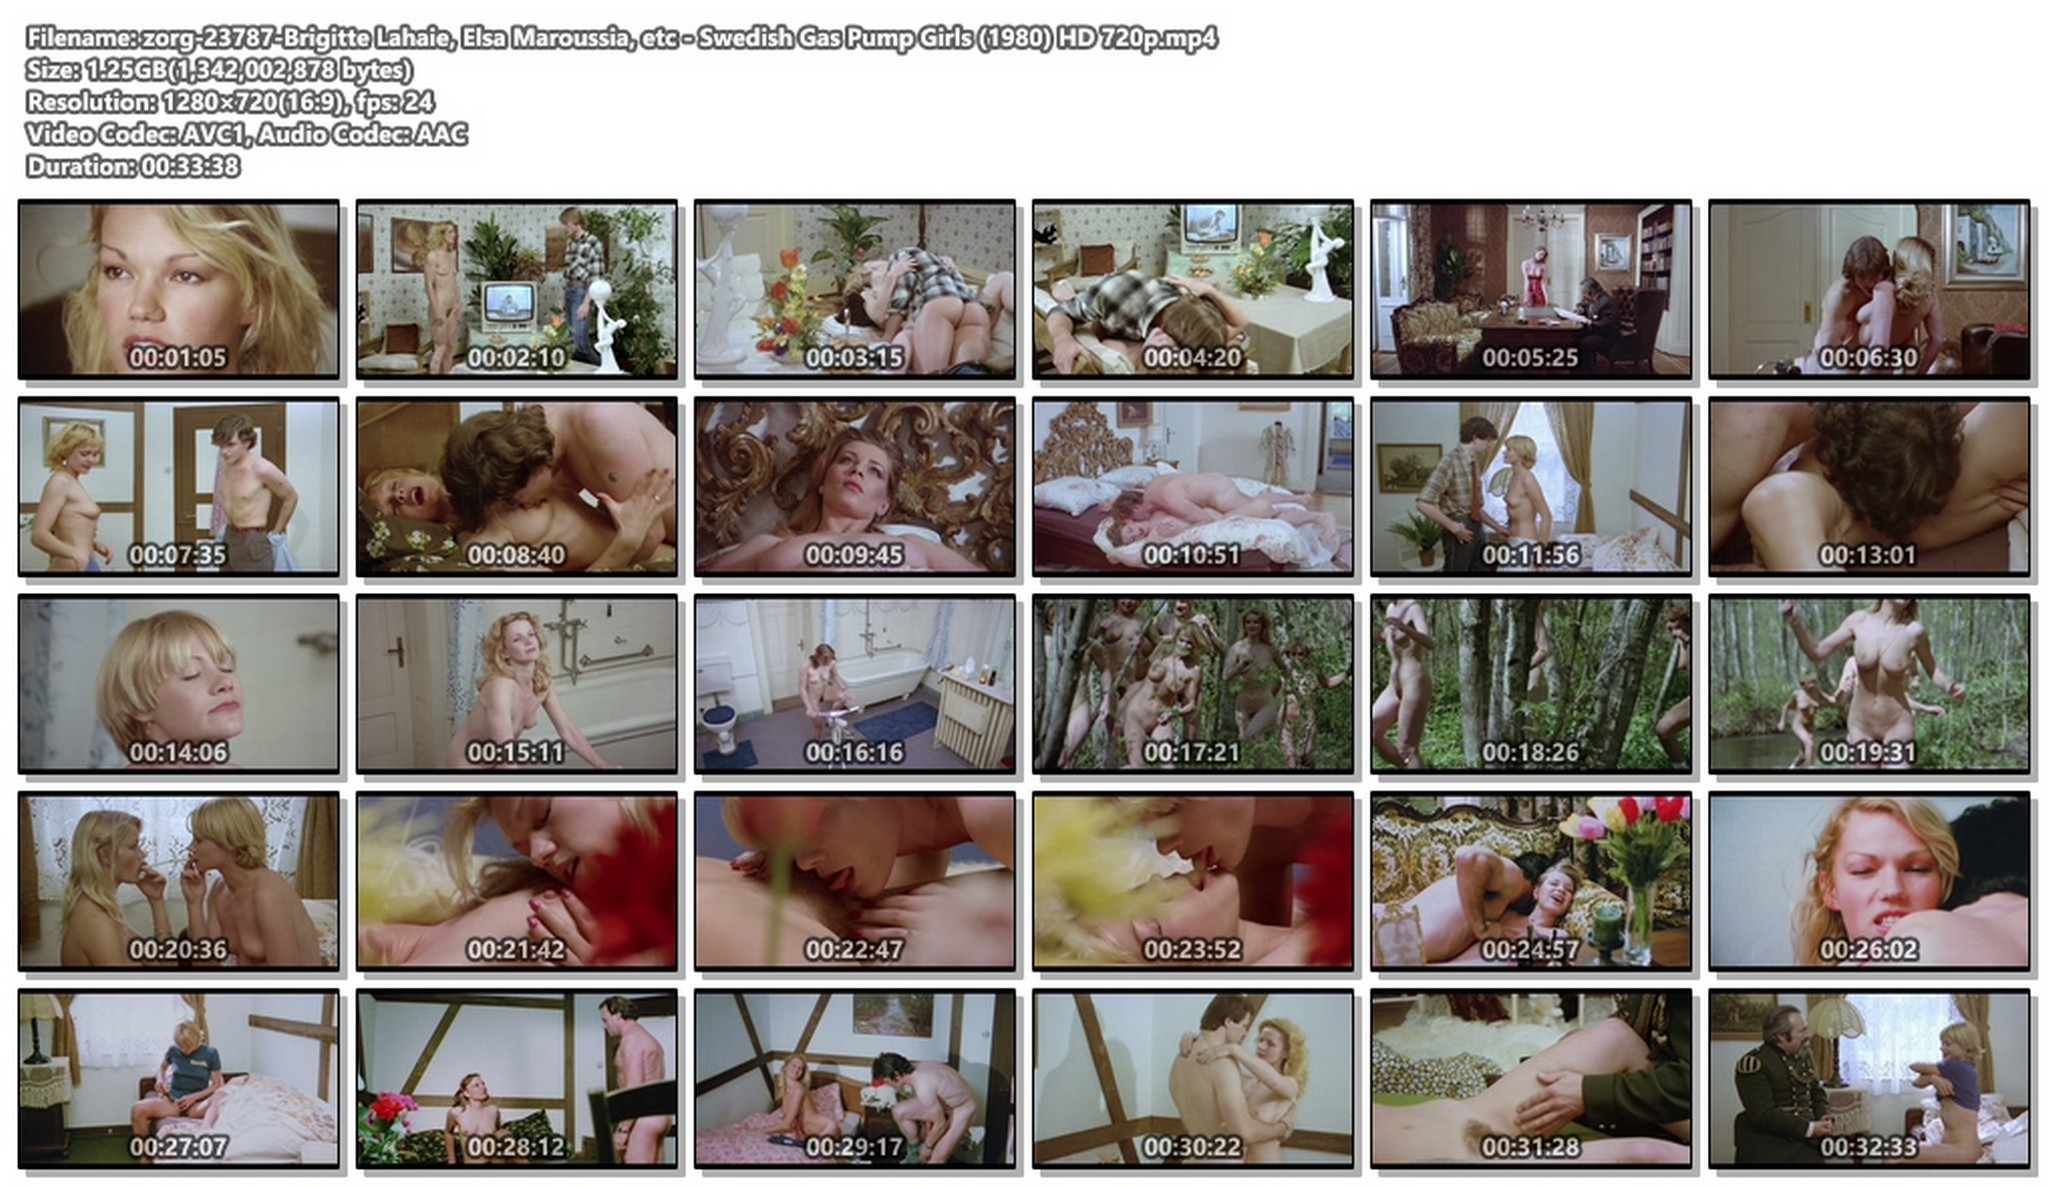 Brigitte Lahaie nude sex Elsa Maroussia and other lots of sex - Swedish Gas Pump Girls (1980) HD 720p BluRay (1)